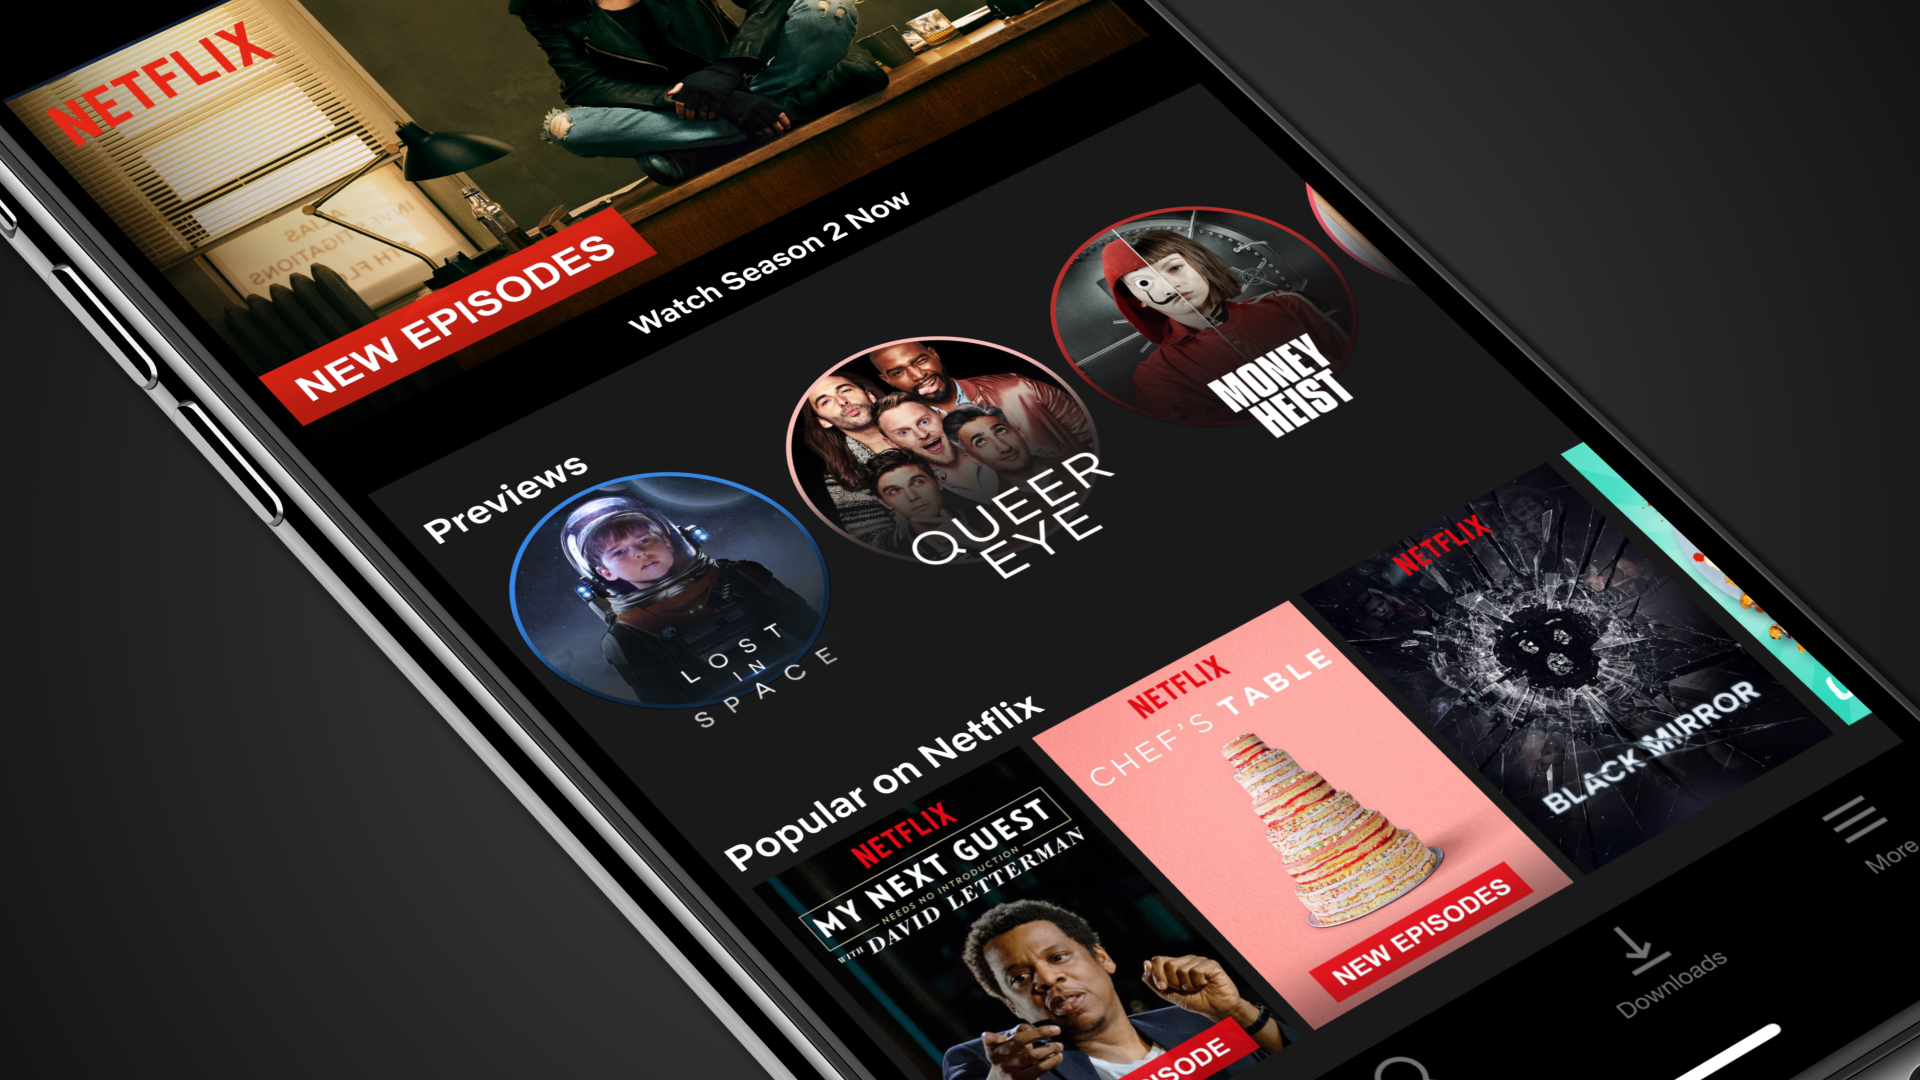 Netflix is testing a Rs 349 Mobile+ plan in India